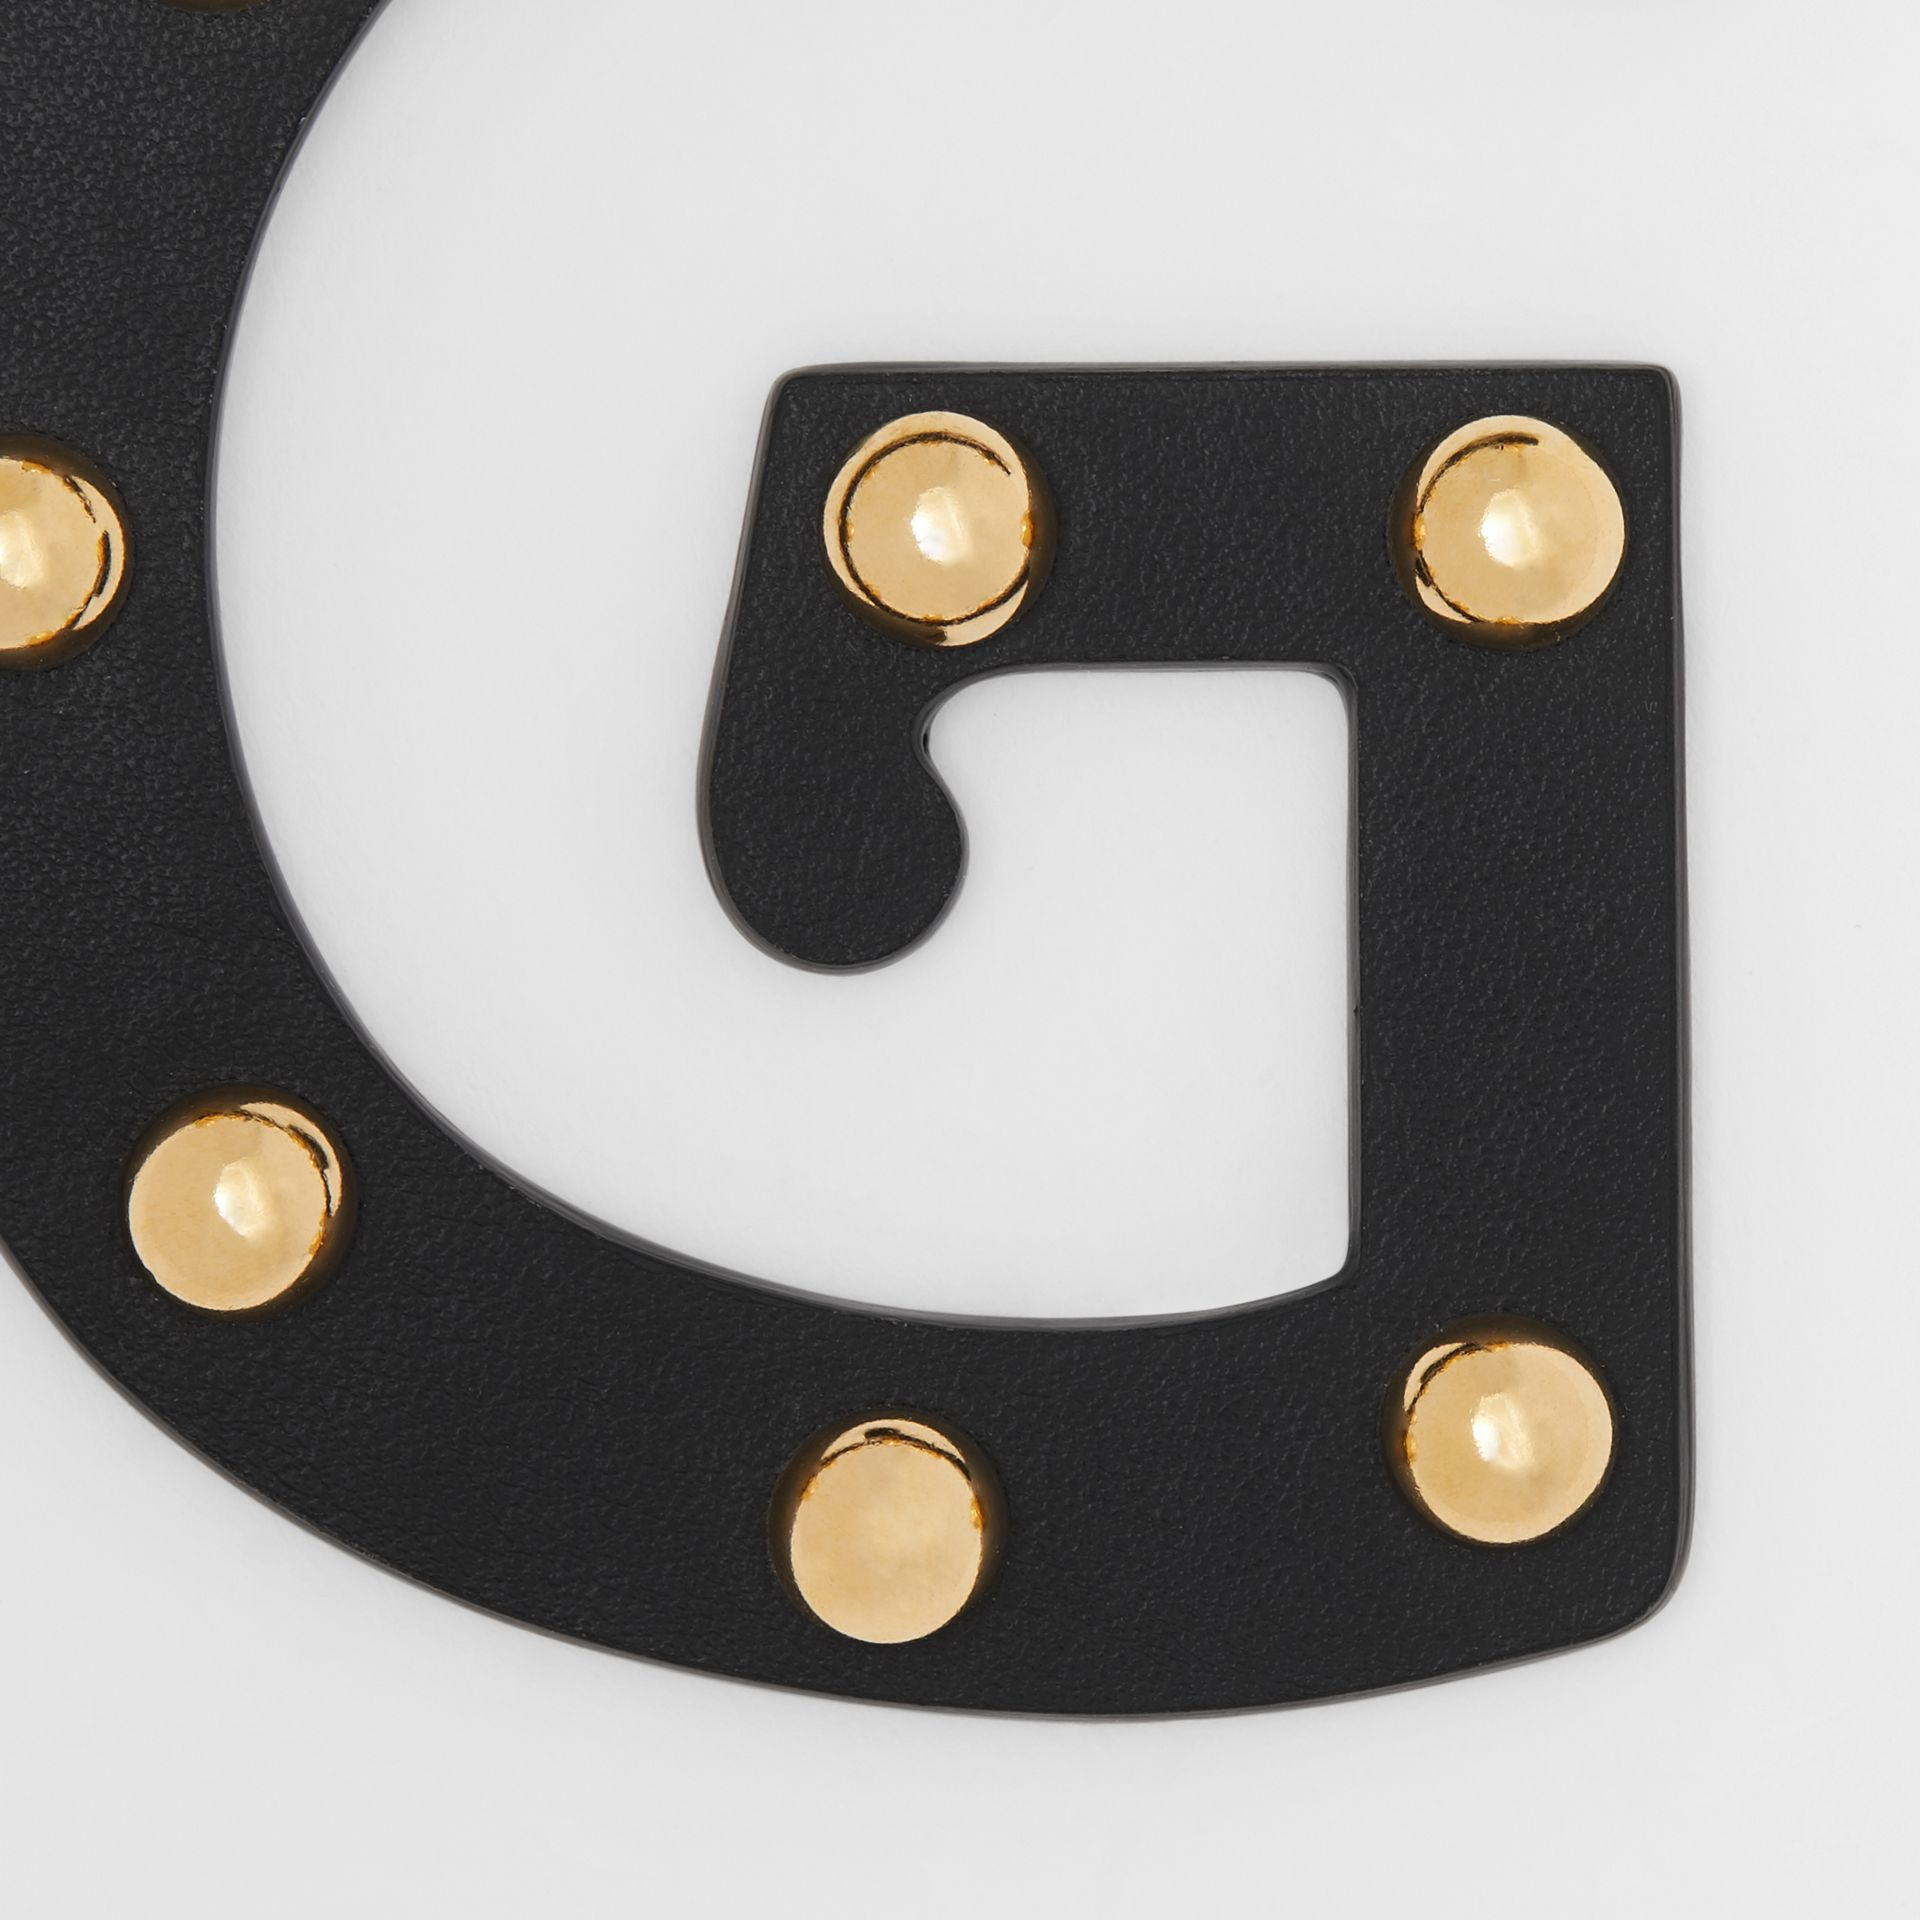 'G' Studded Leather Alphabet Charm in Black/light Gold - Women | Burberry Hong Kong S.A.R - gallery image 1